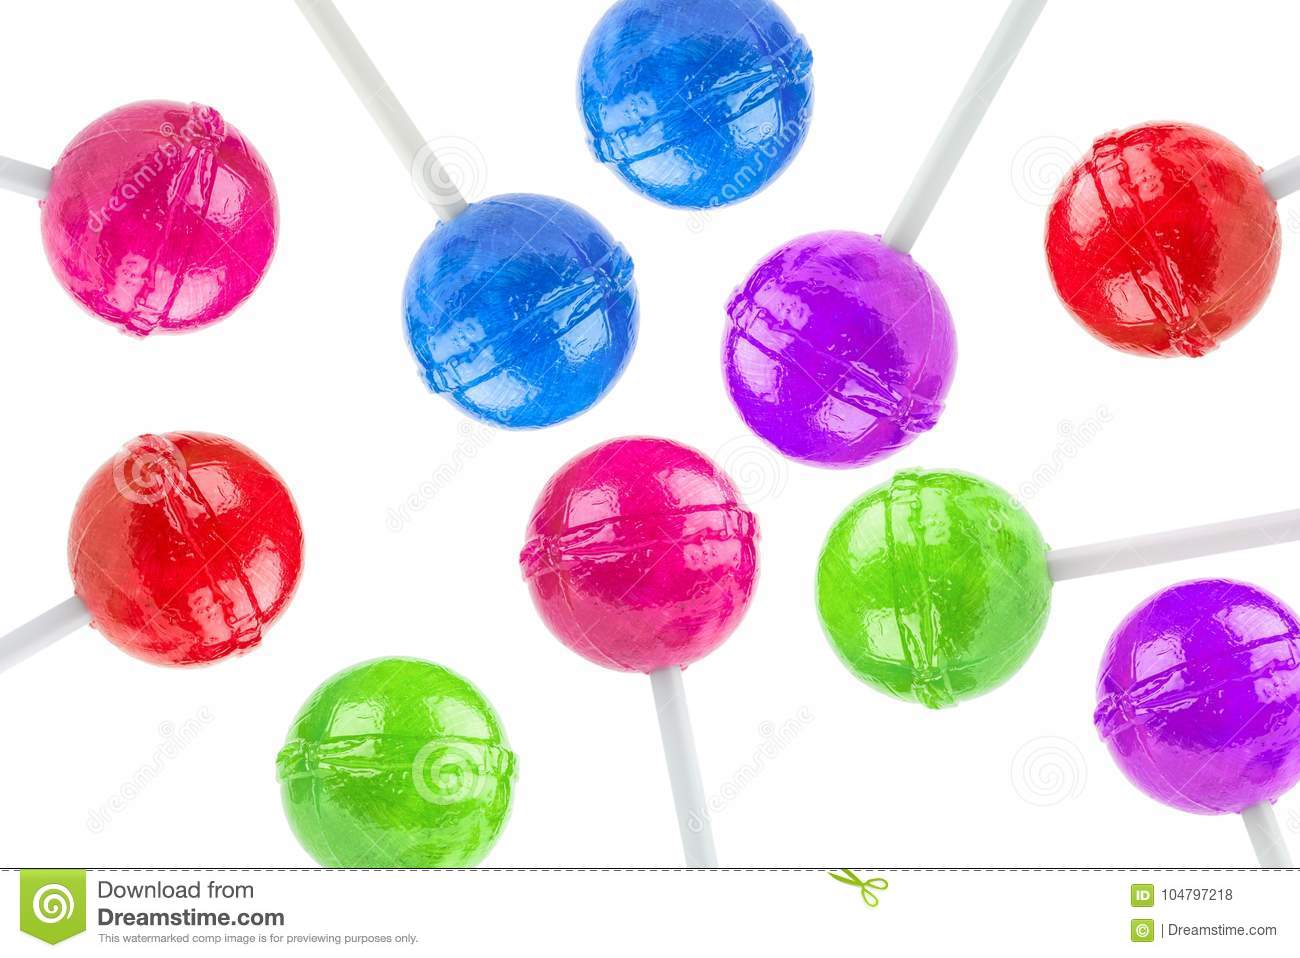 An array of colored lollipops